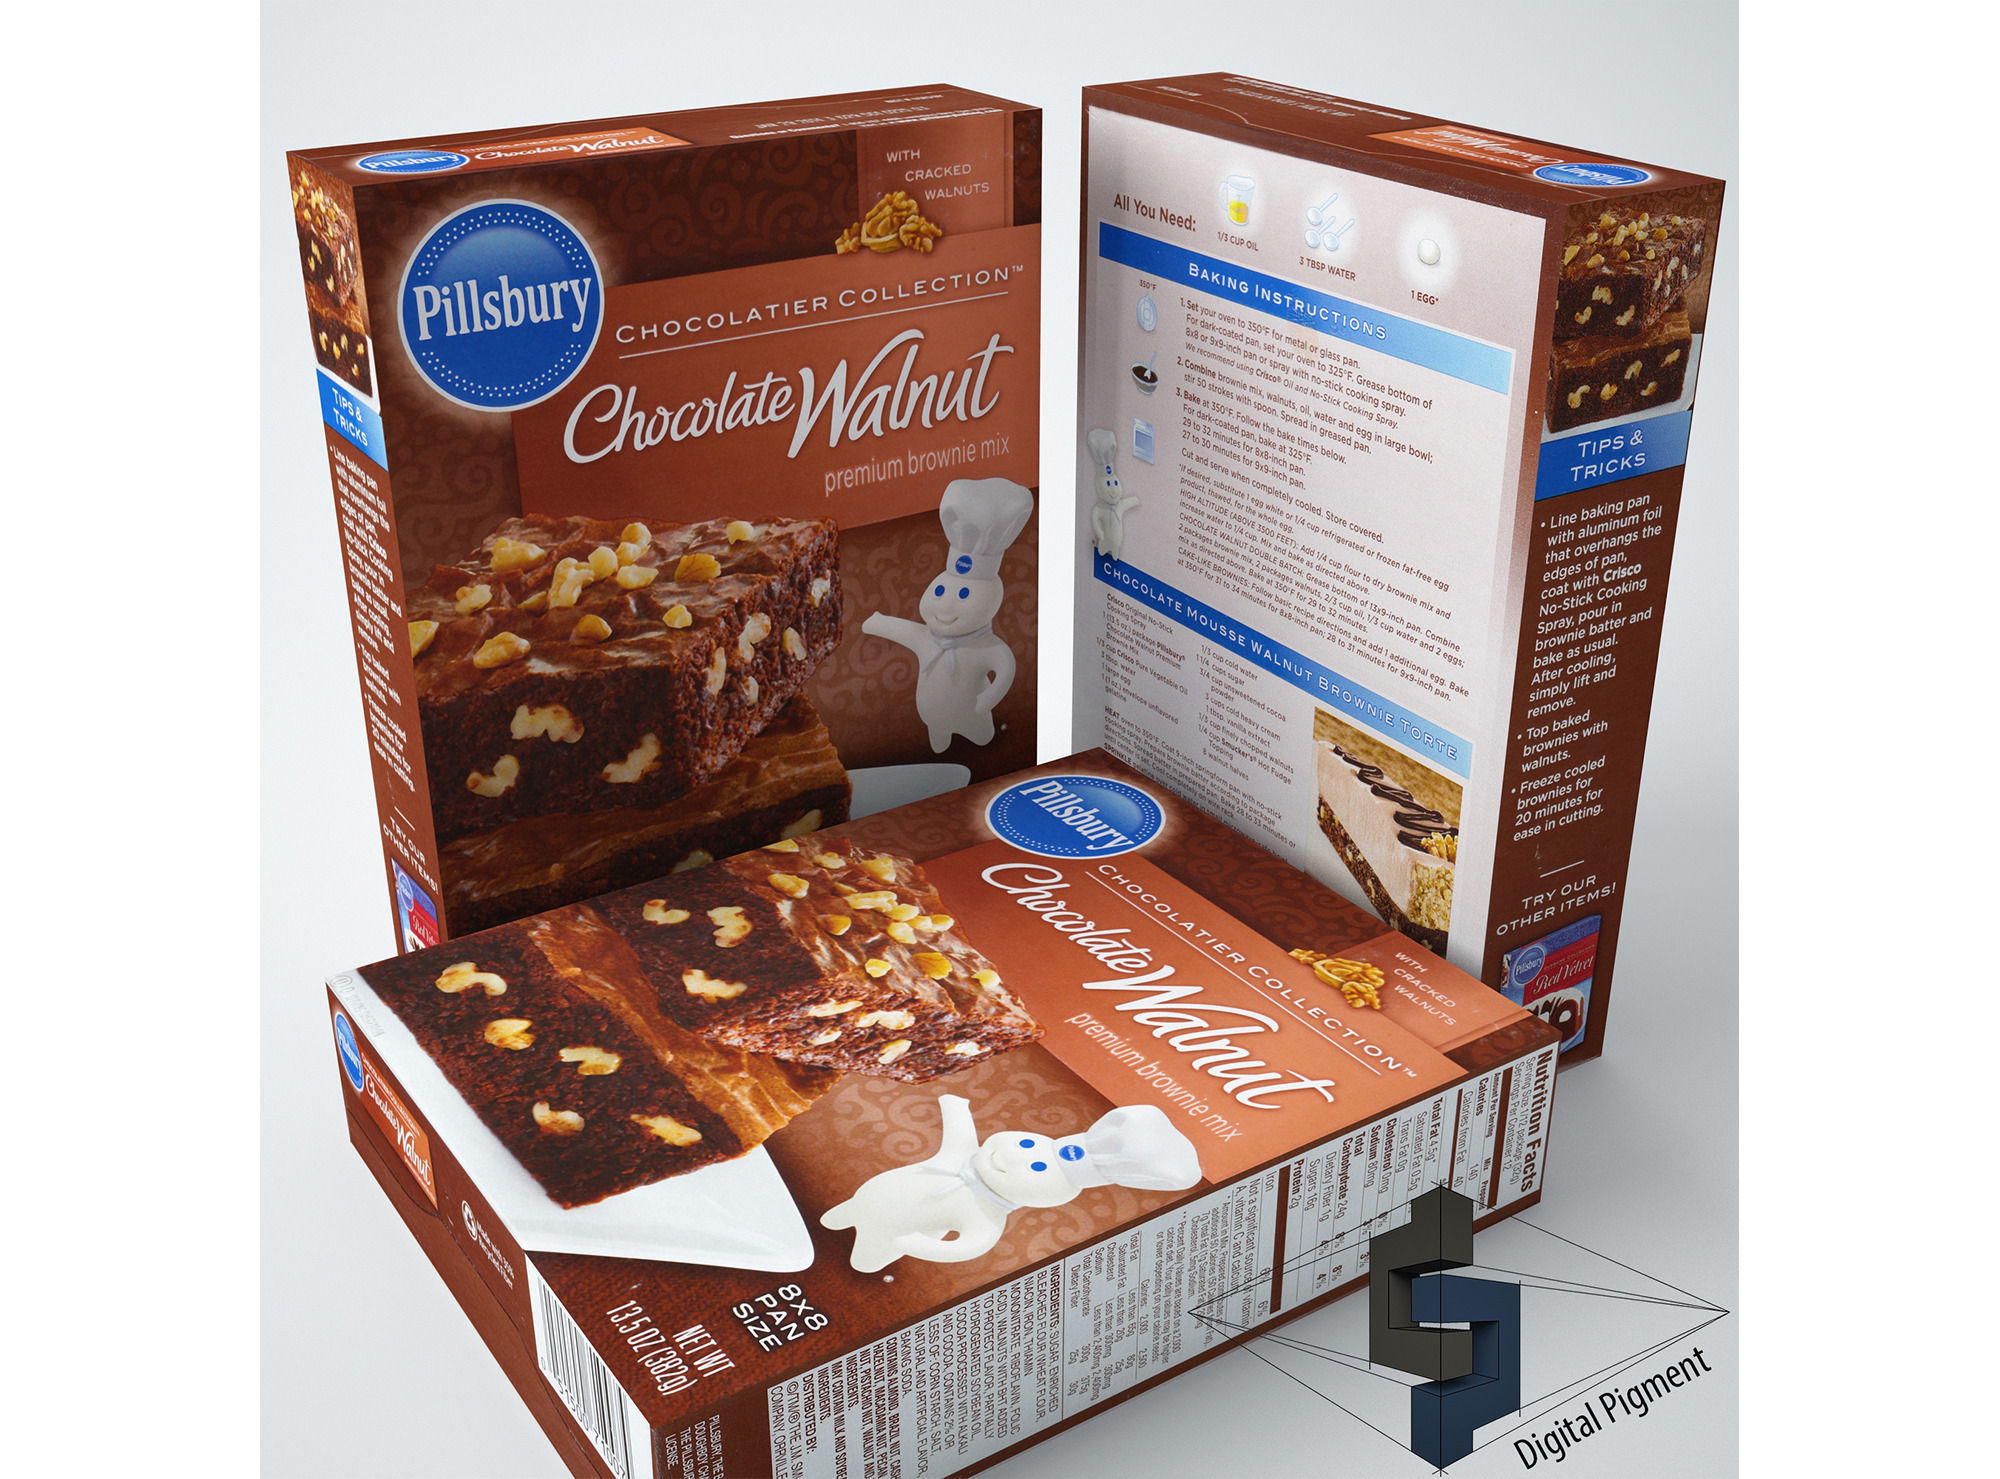 Pillsbury Chocolate Walnut Brownie Mix